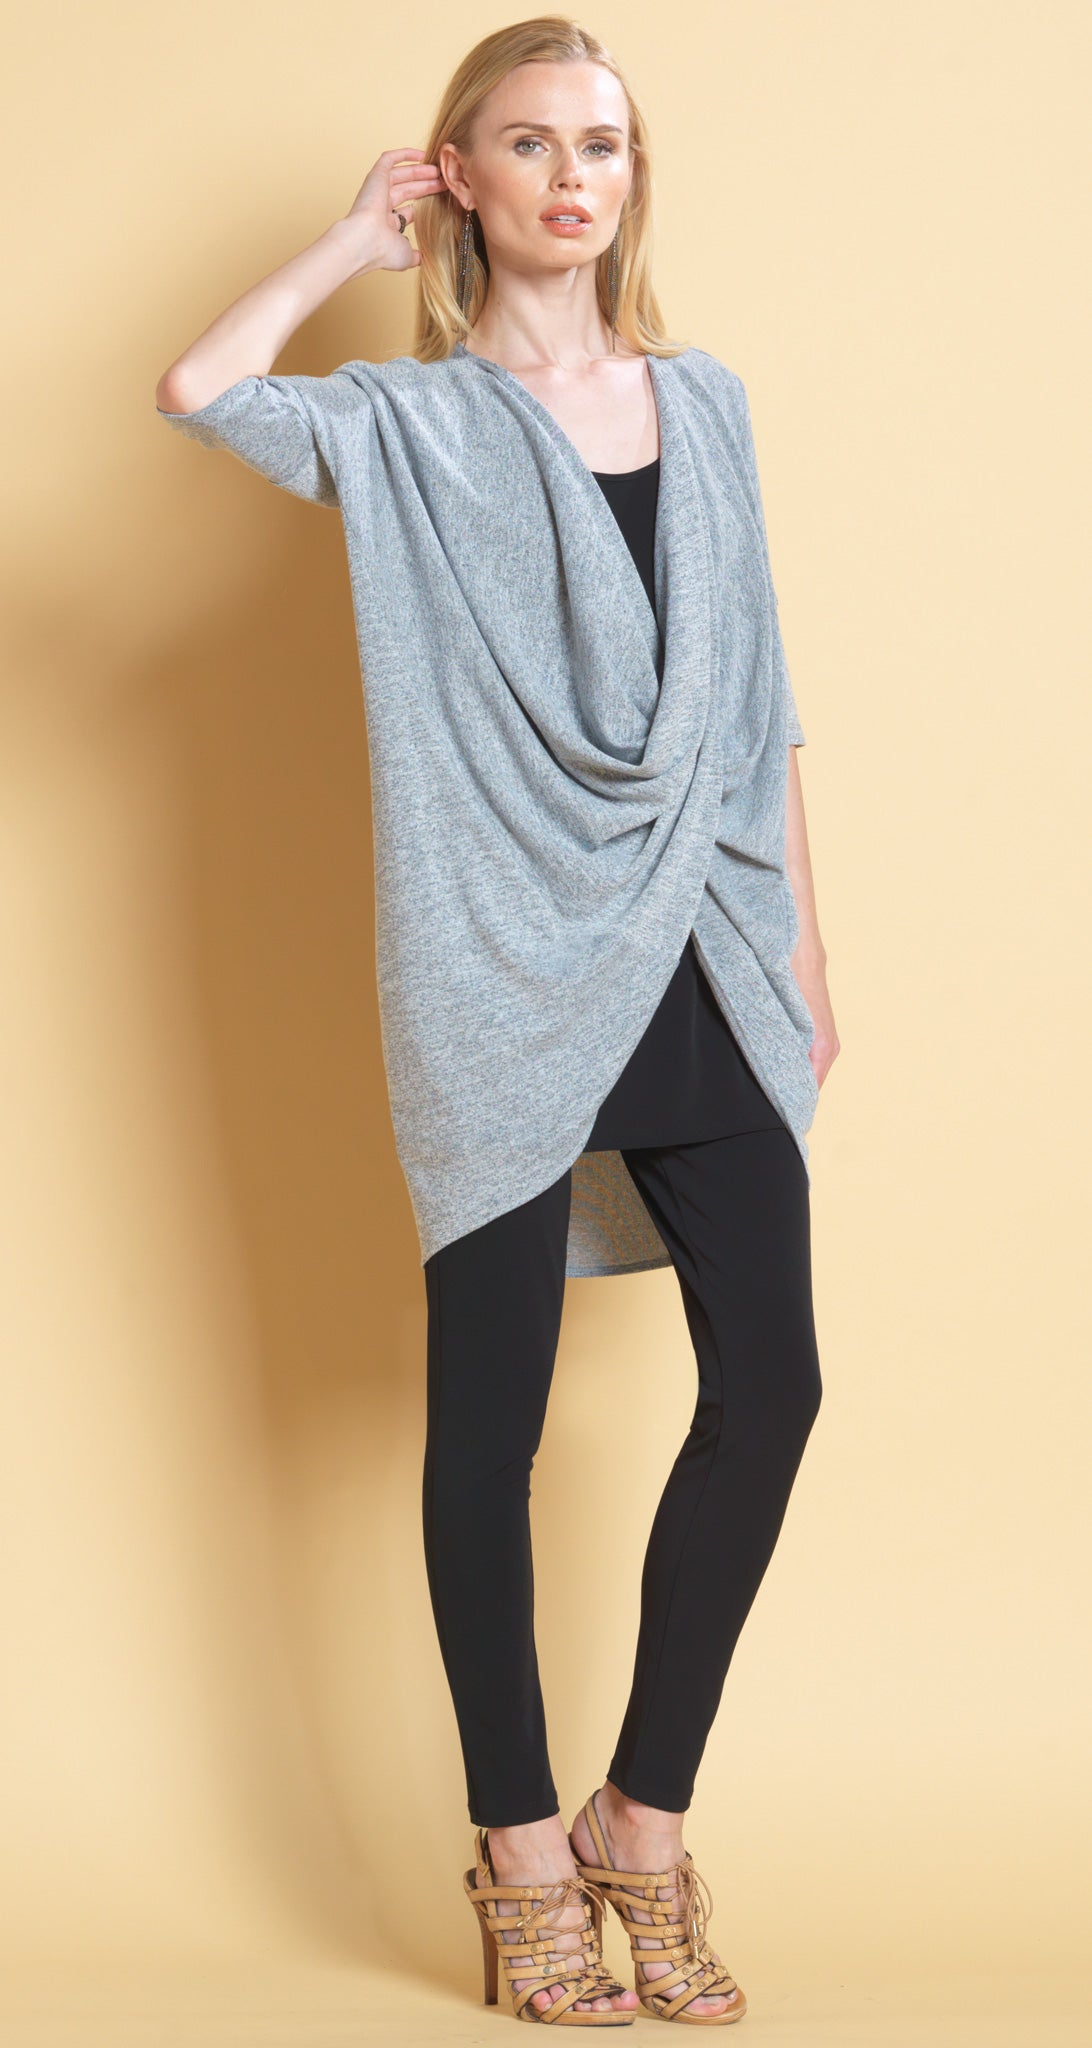 Crossover Under Loop Sweater - Clara Sunwoo